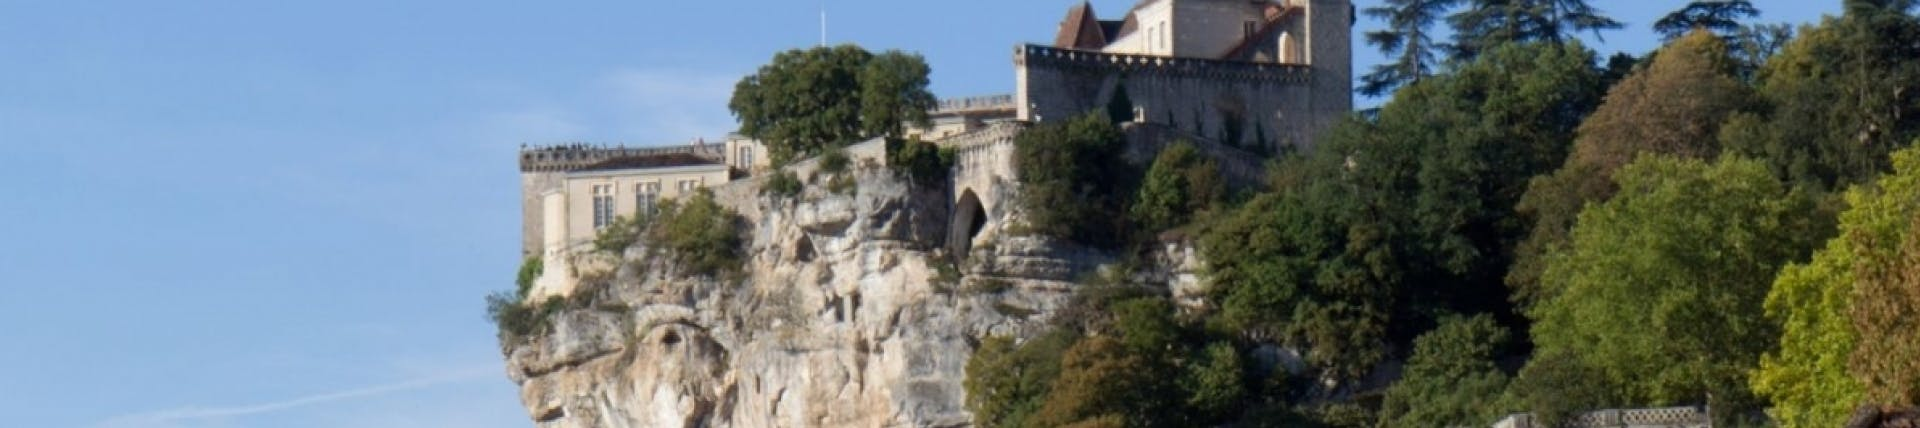 Picture of Rocamadour